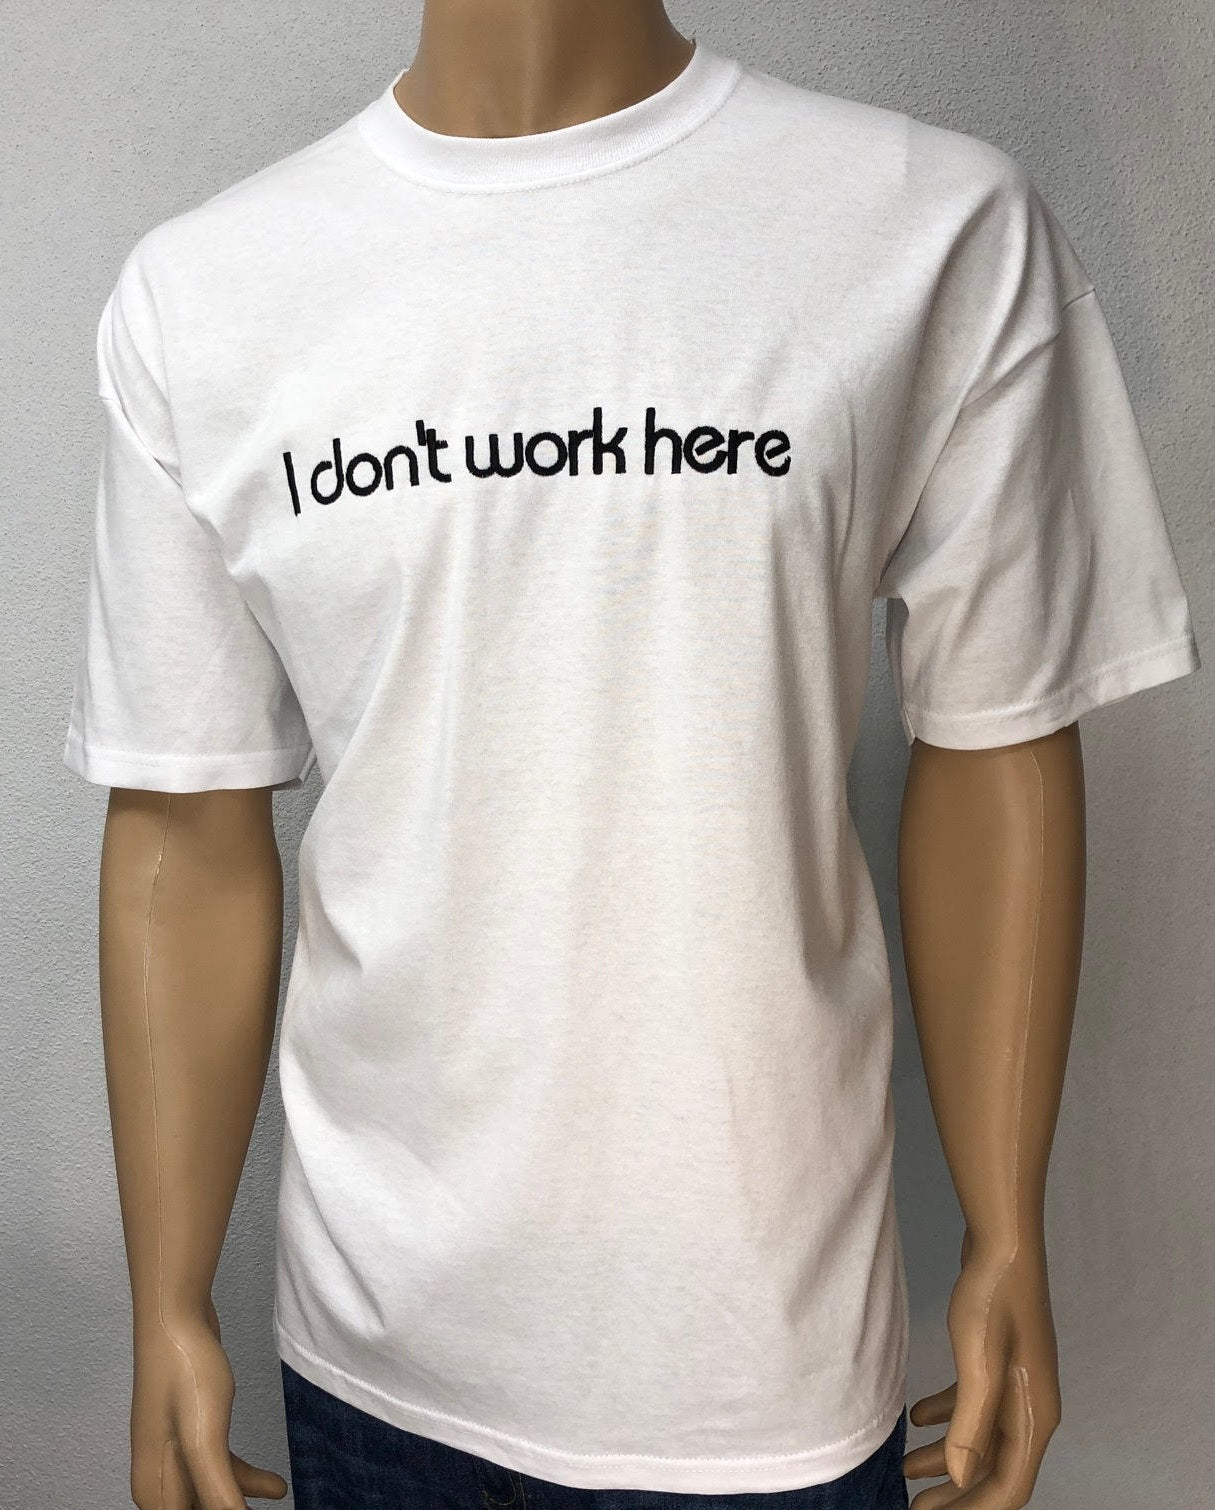 I don't work here 👕 Embroidered text T-shirt